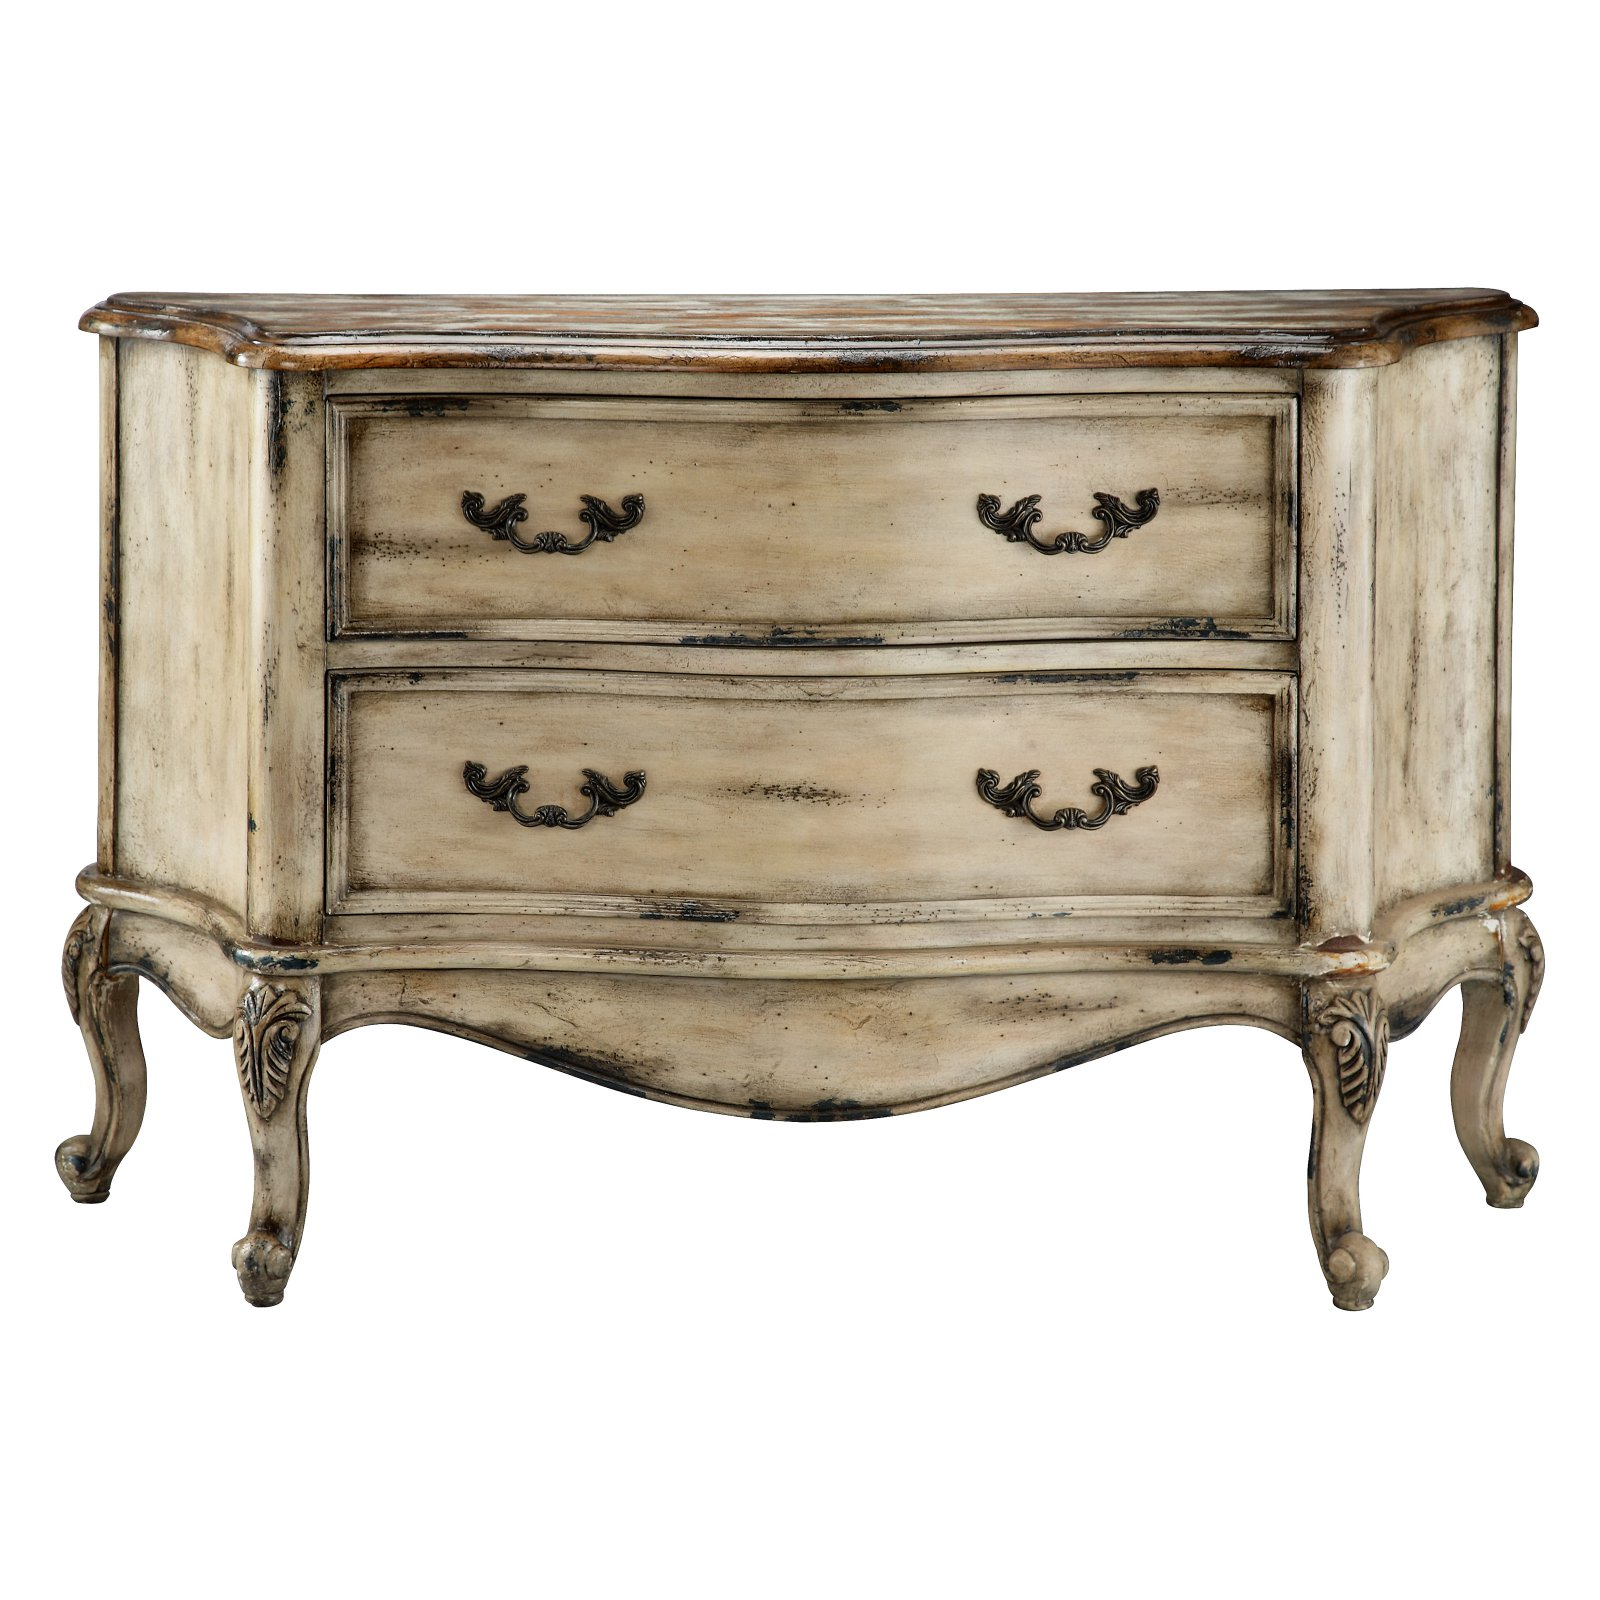 Dorset 2 Drawer Leg Chest